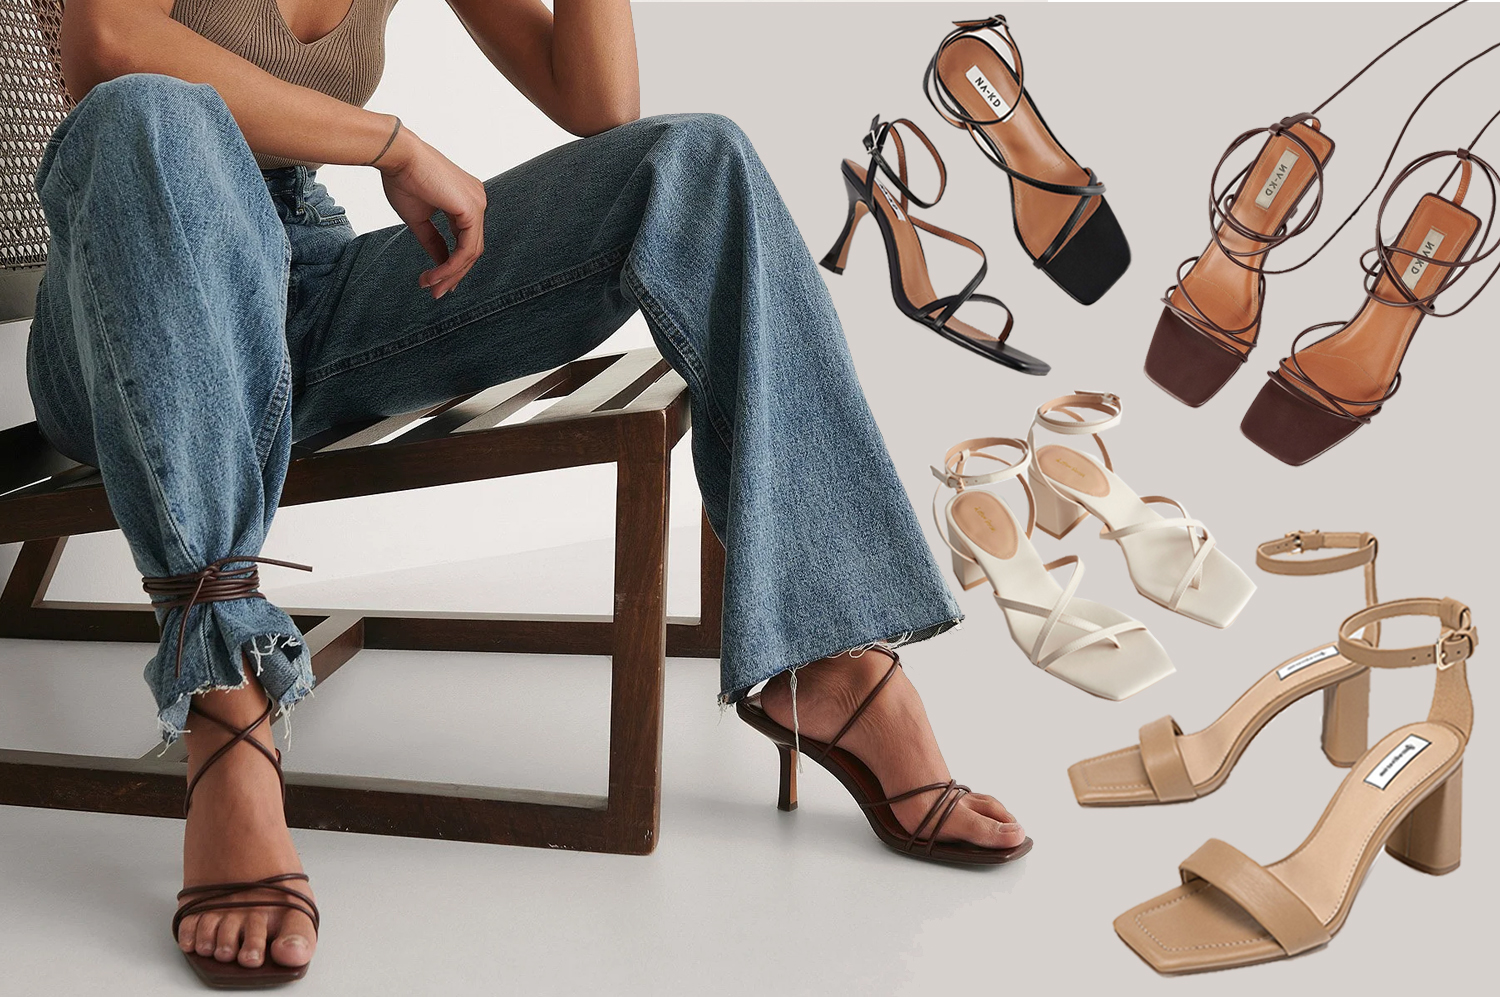 Stylish Heeled Sandals to Buy For Summer